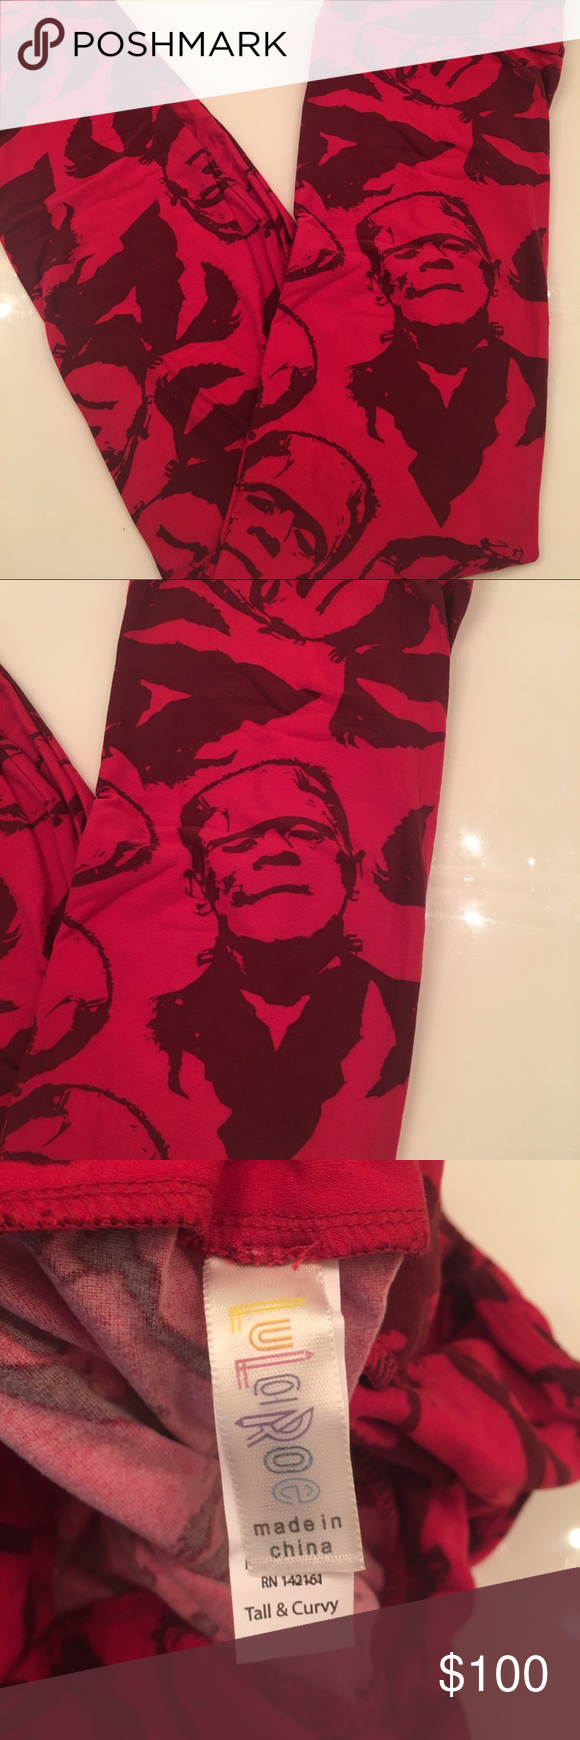 LuLaRoe TC leggings Halloween Frankenstein red Rare print a total unicorn  offers are welcome but 25 is not a reasonable offer if you can buy from a consultant please do LuLaRoe Pants Leggings